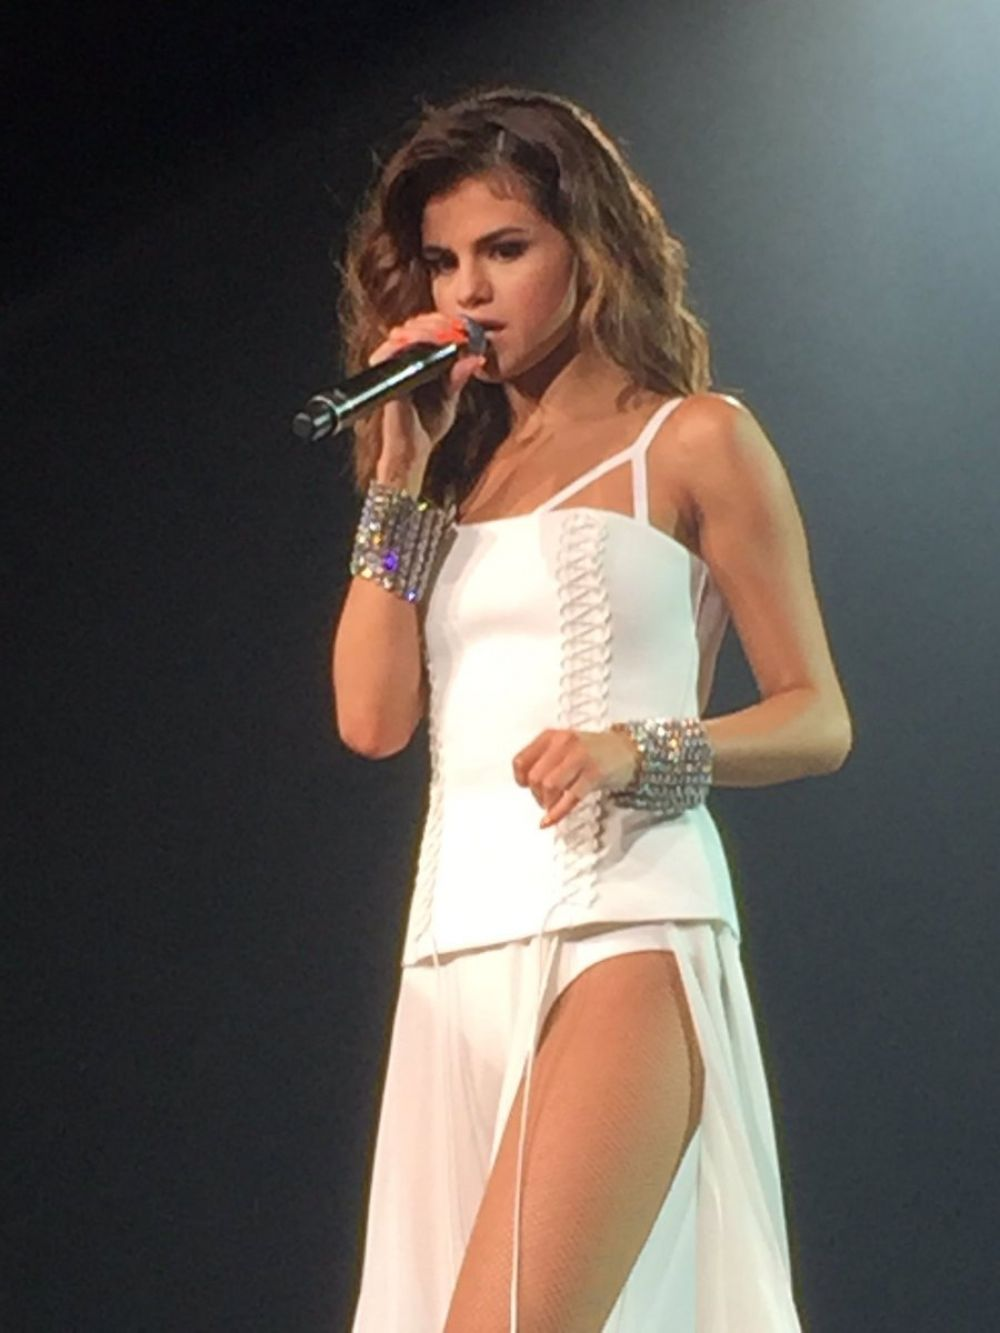 SELENA GOMEZ Performs at Revival Tour in Melbourne 08/05/2016